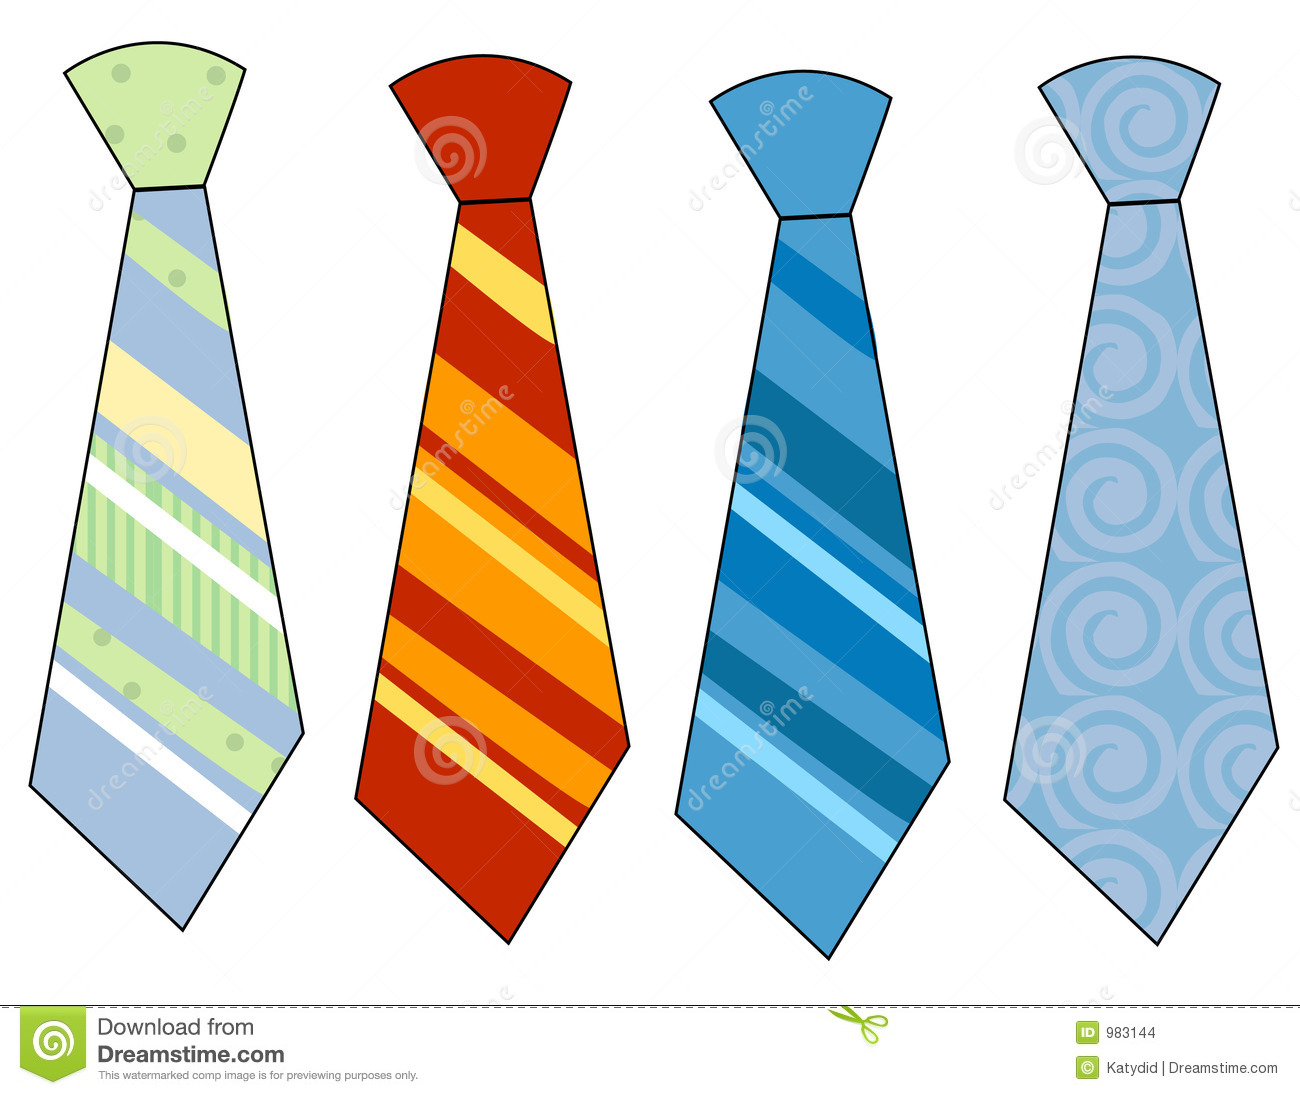 Neck Ties Stock Images - Image: 983144